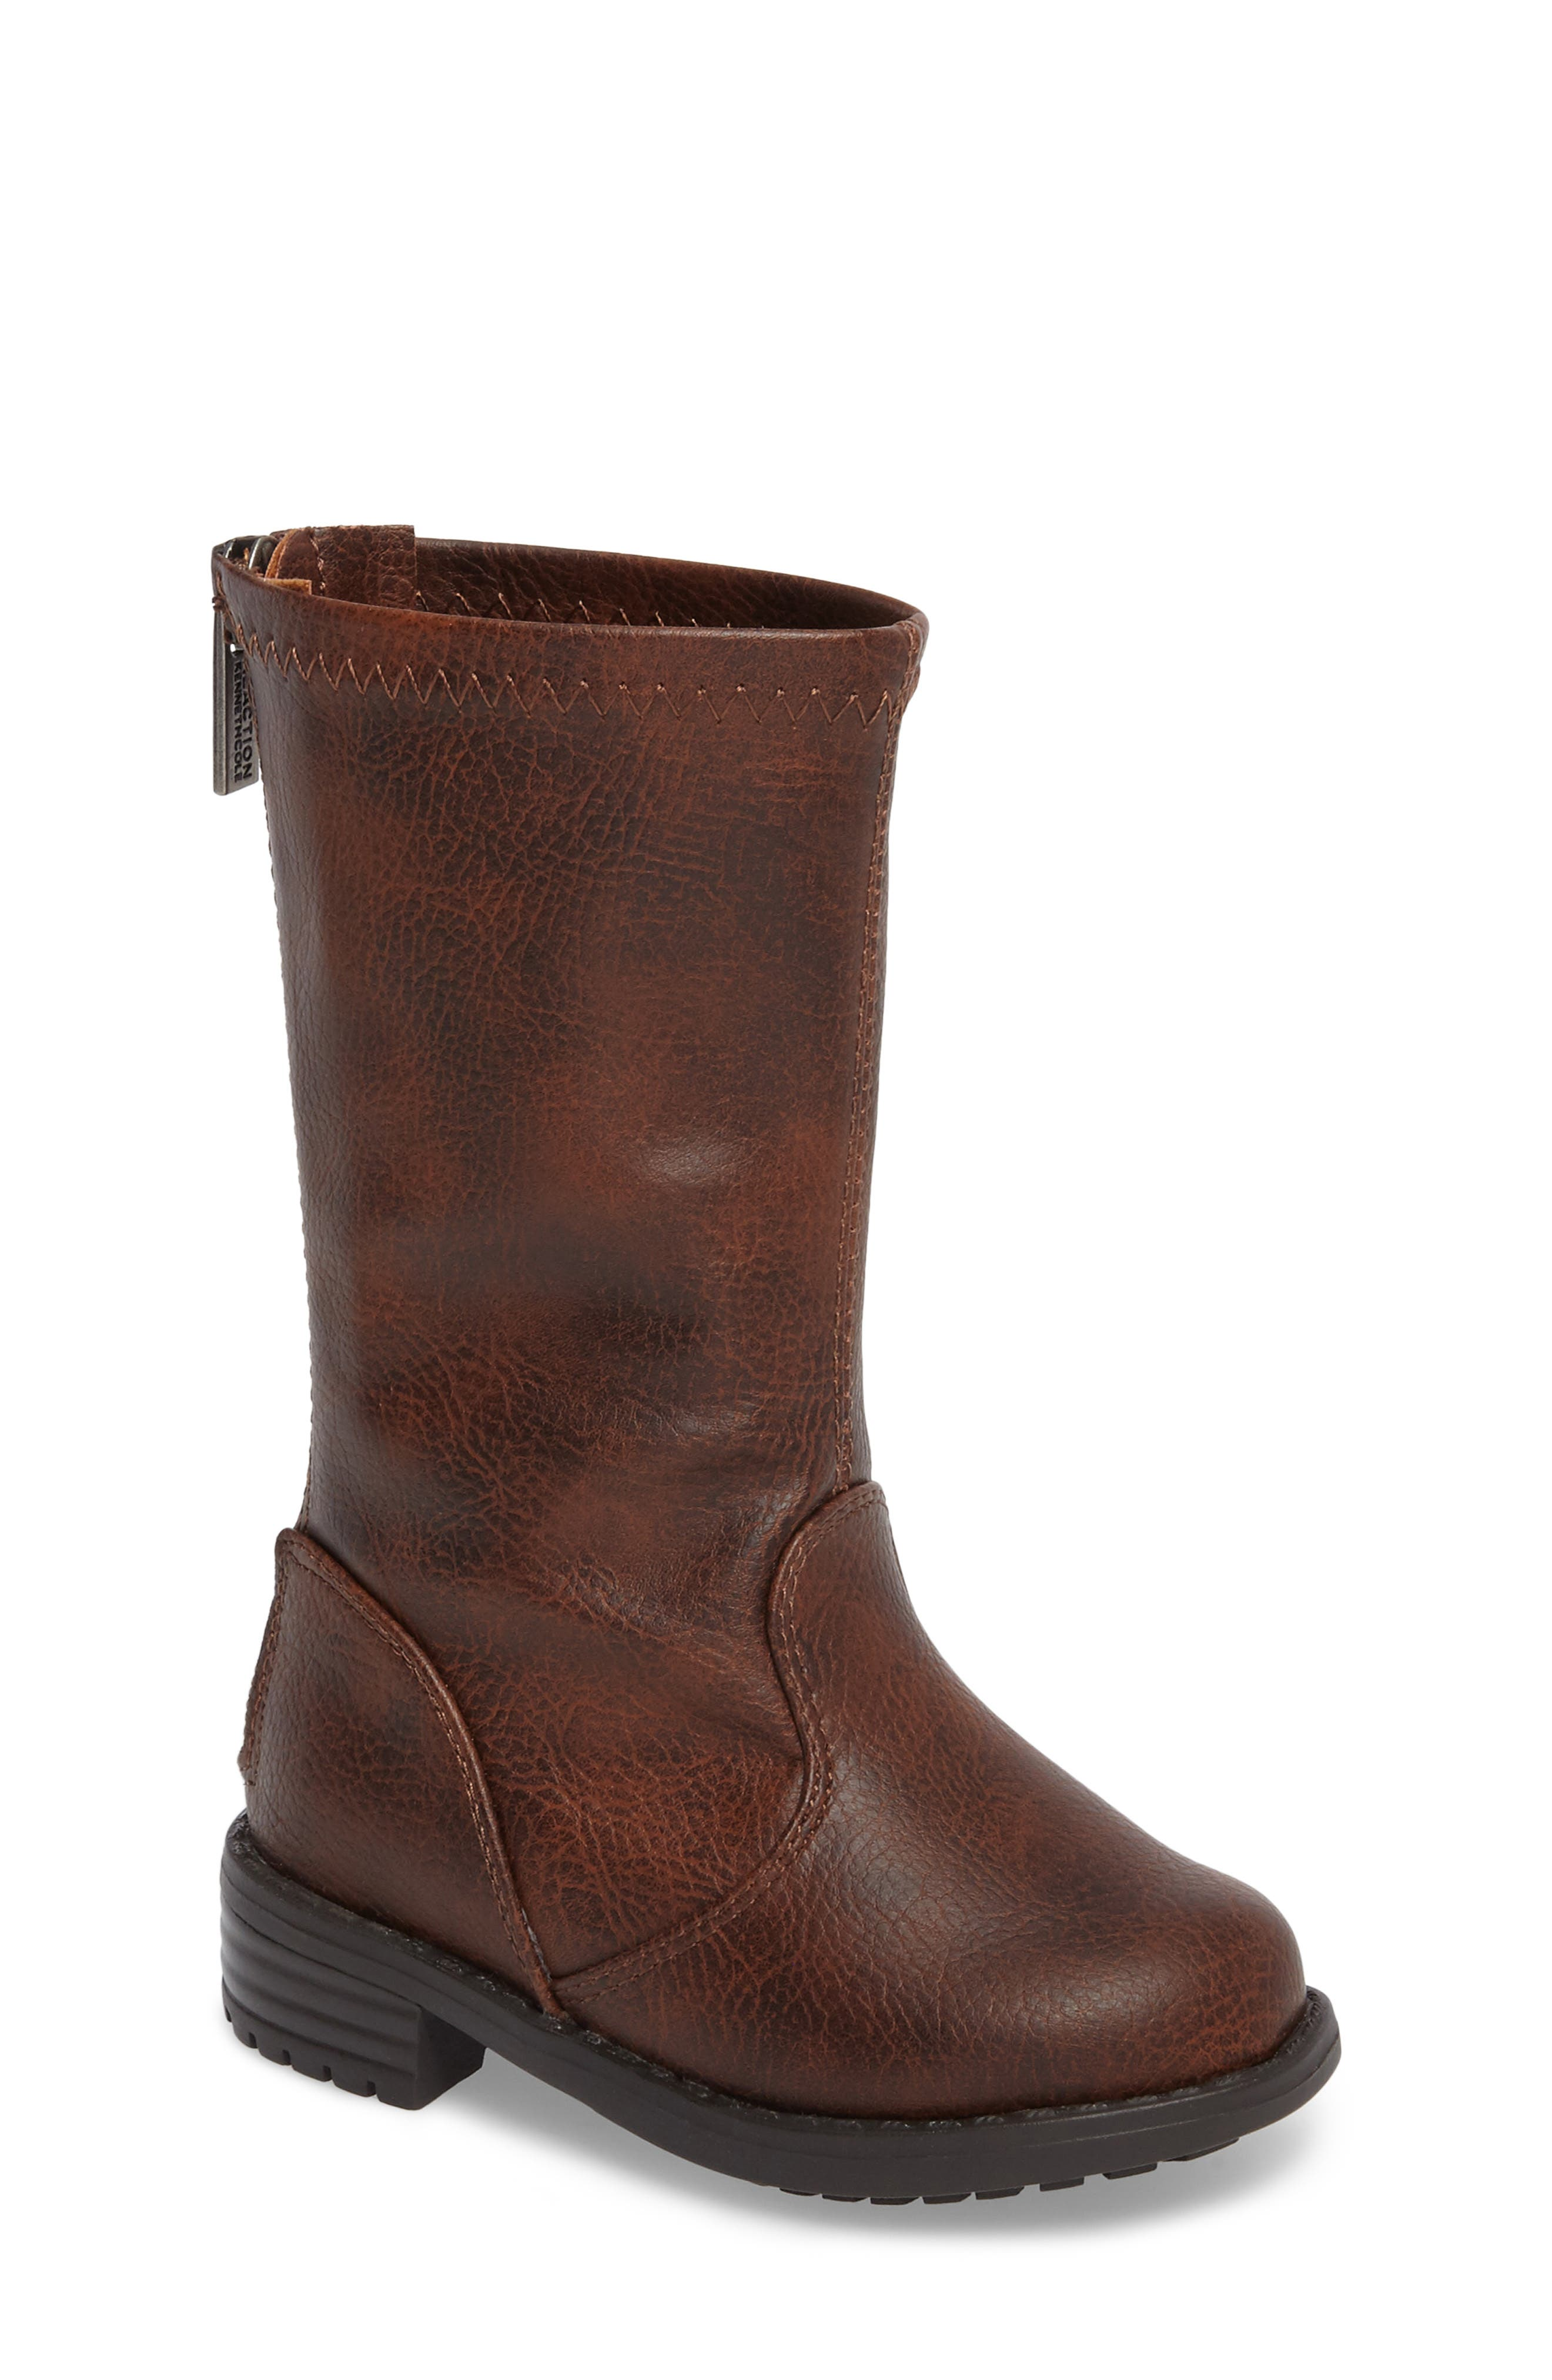 Autumn Stretch Boot,                         Main,                         color, Distressed Brown Faux Leather